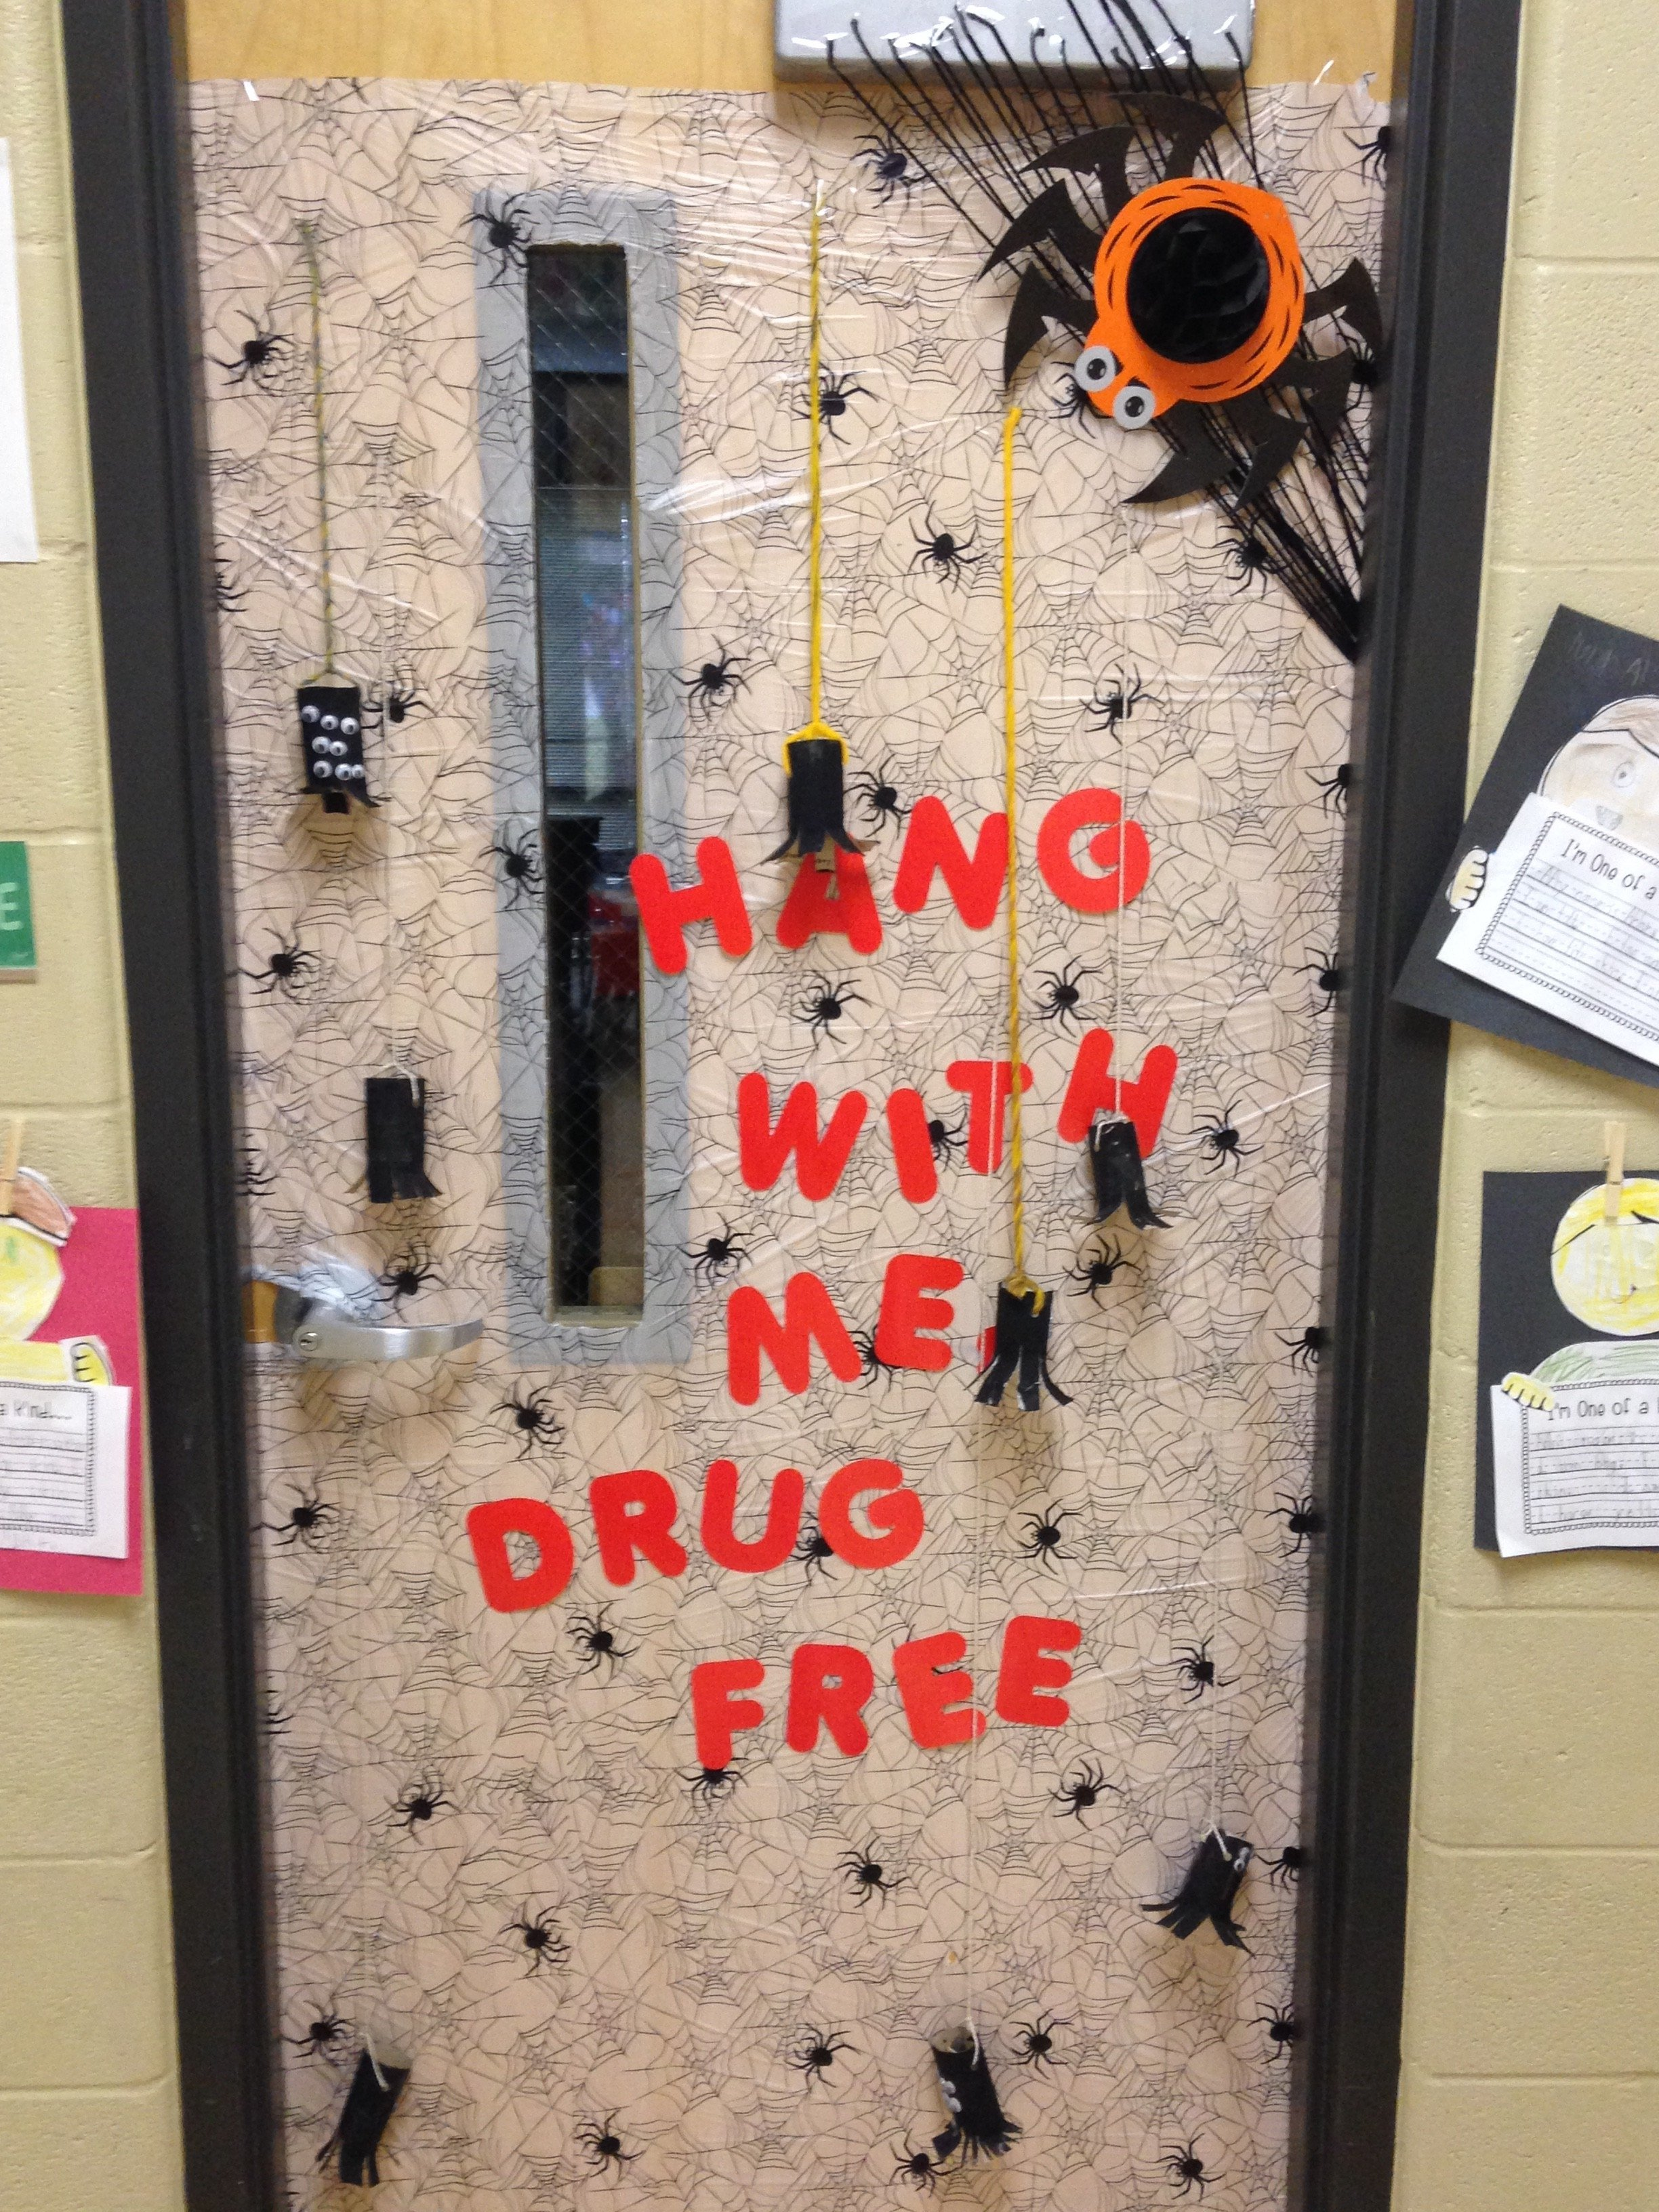 10 Famous Ideas For Red Ribbon Week red ribbon week door decorations saint john vianney catholic school 2 2020